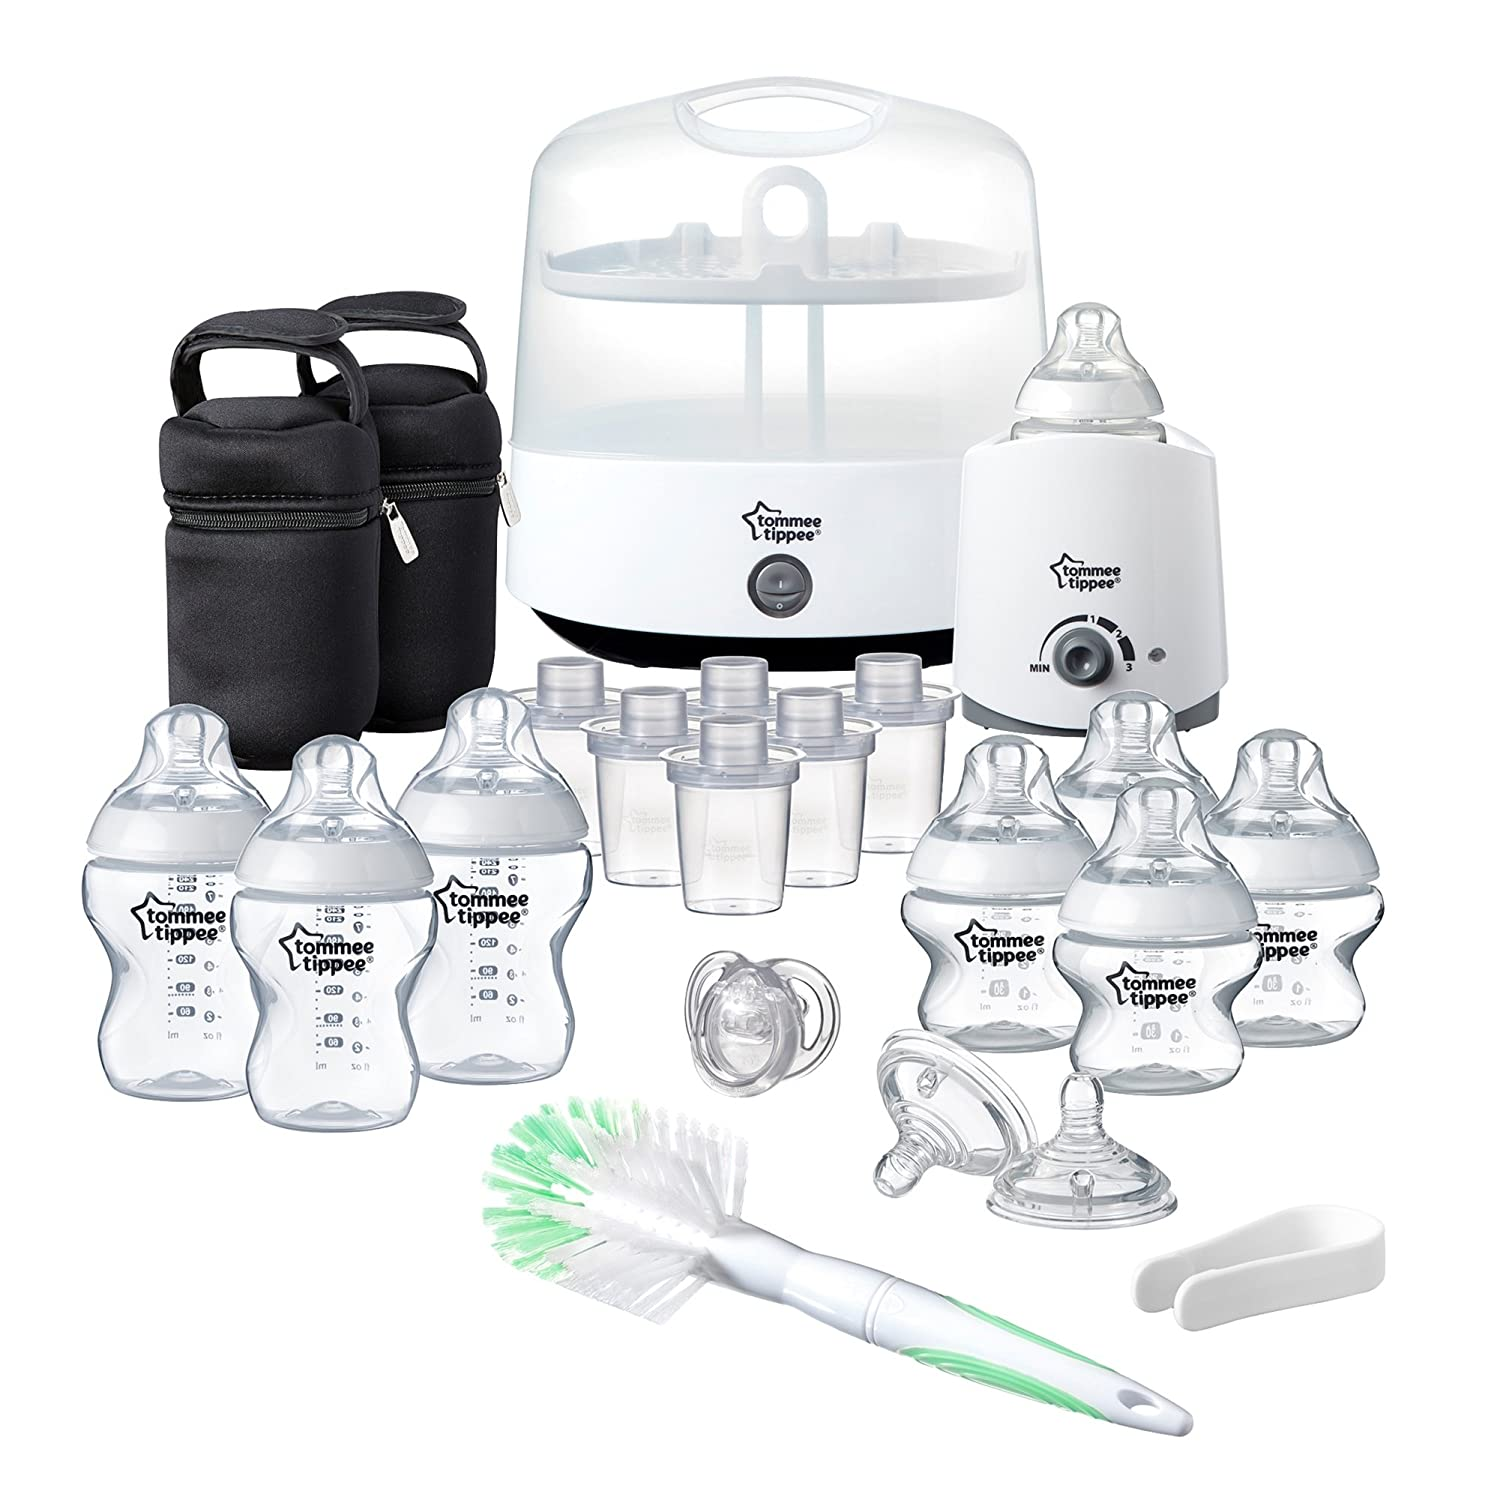 Tommee Tippee Complete Feeding Set (Closer to Nature) Mayborn Group 423581